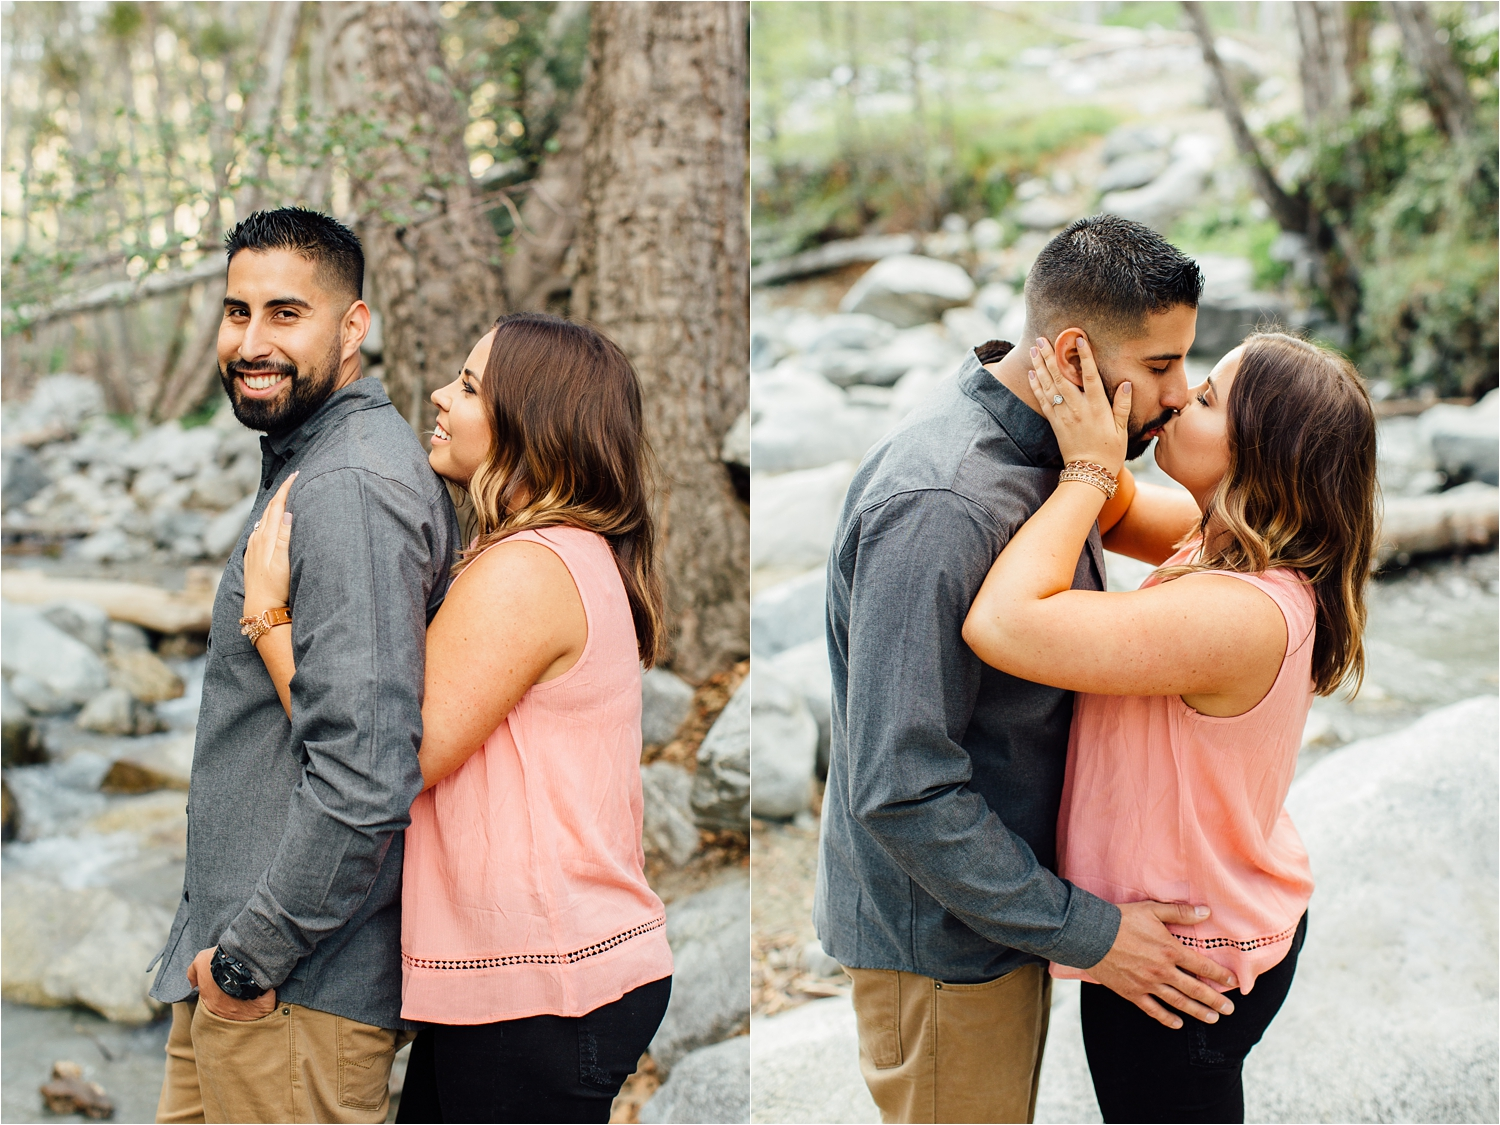 Southern California Engagement Session - Mountain Engagement Photographer - http://brittneyhannonphotography.com